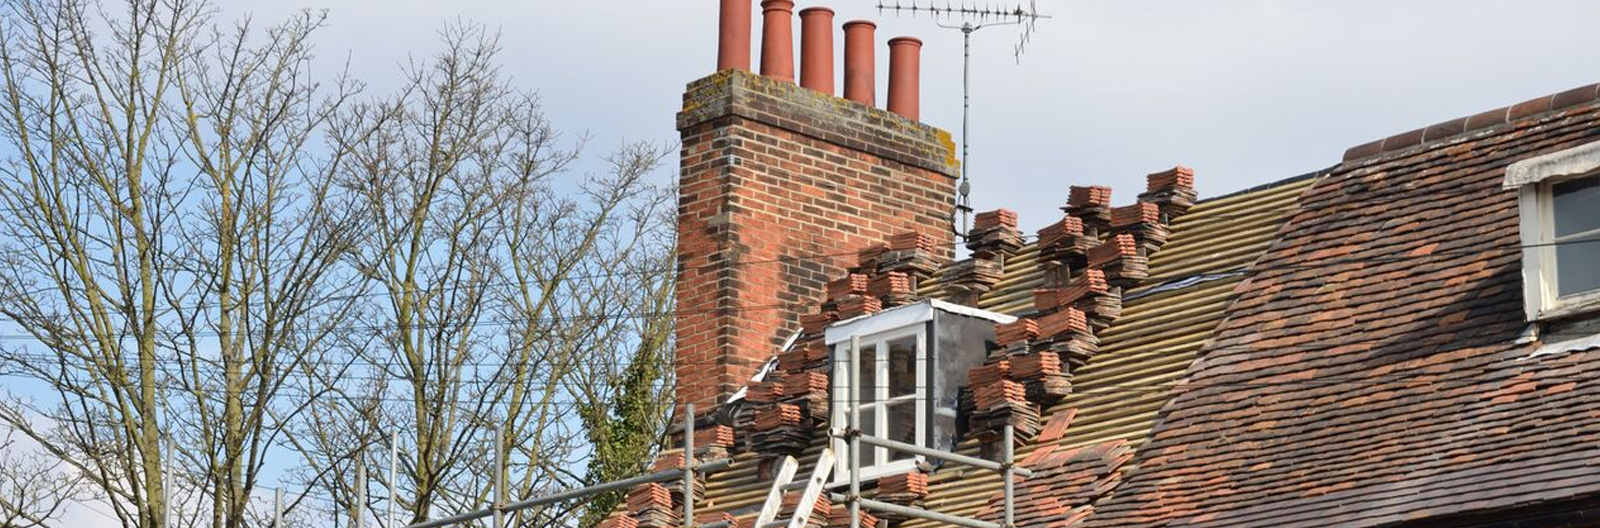 Roof Repairs In Wolverhampton Roofing Services In Dudley